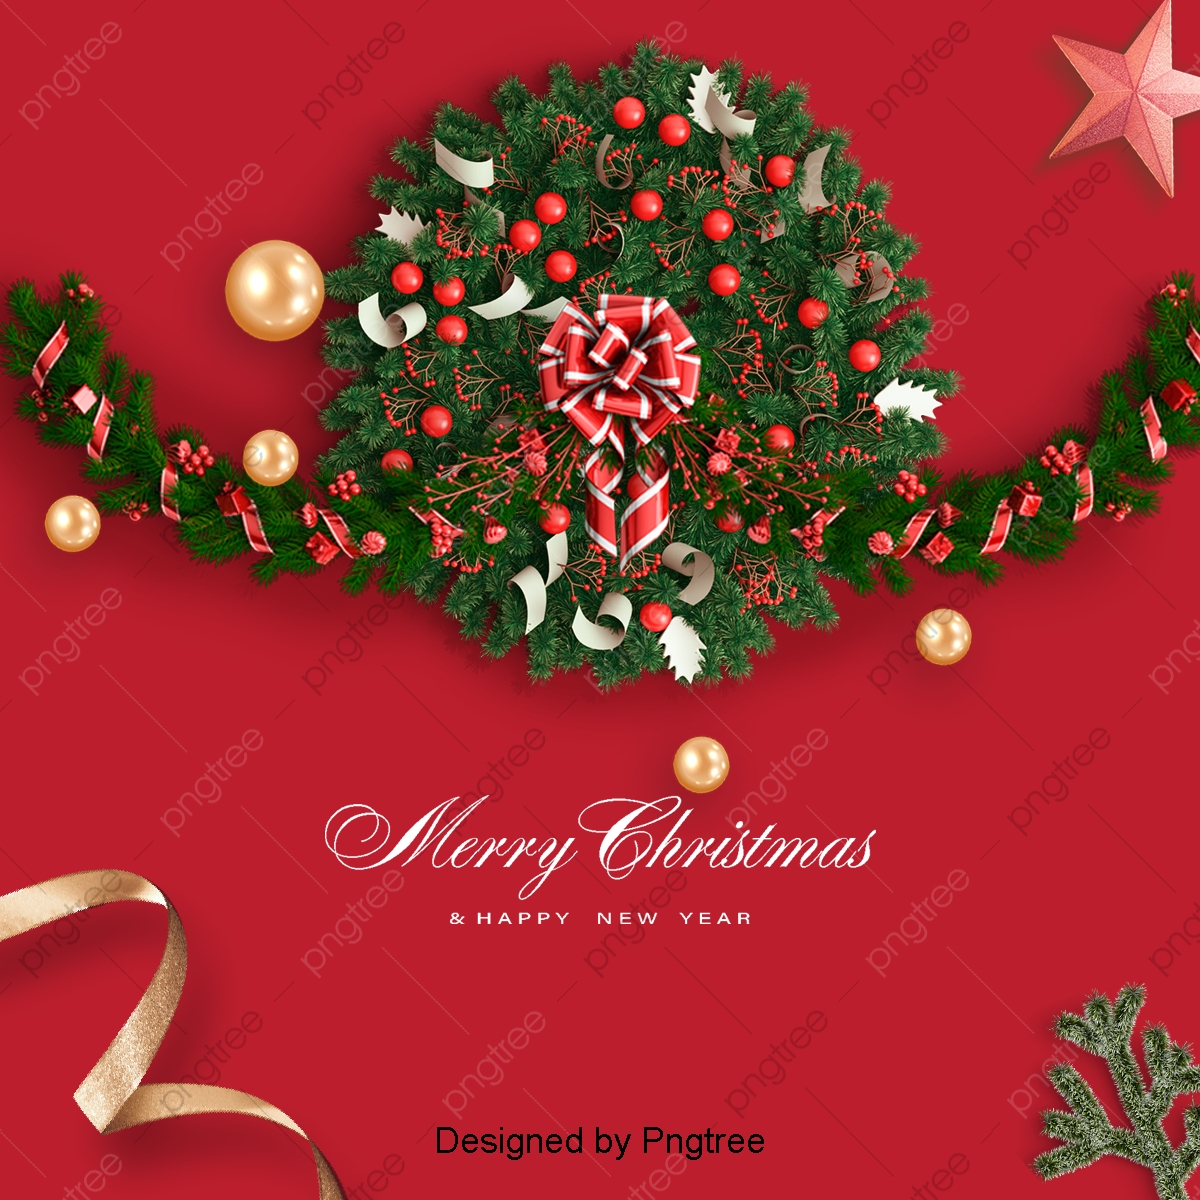 Christmas Green Color.Red And Green Color And The Original Christmas Promotion